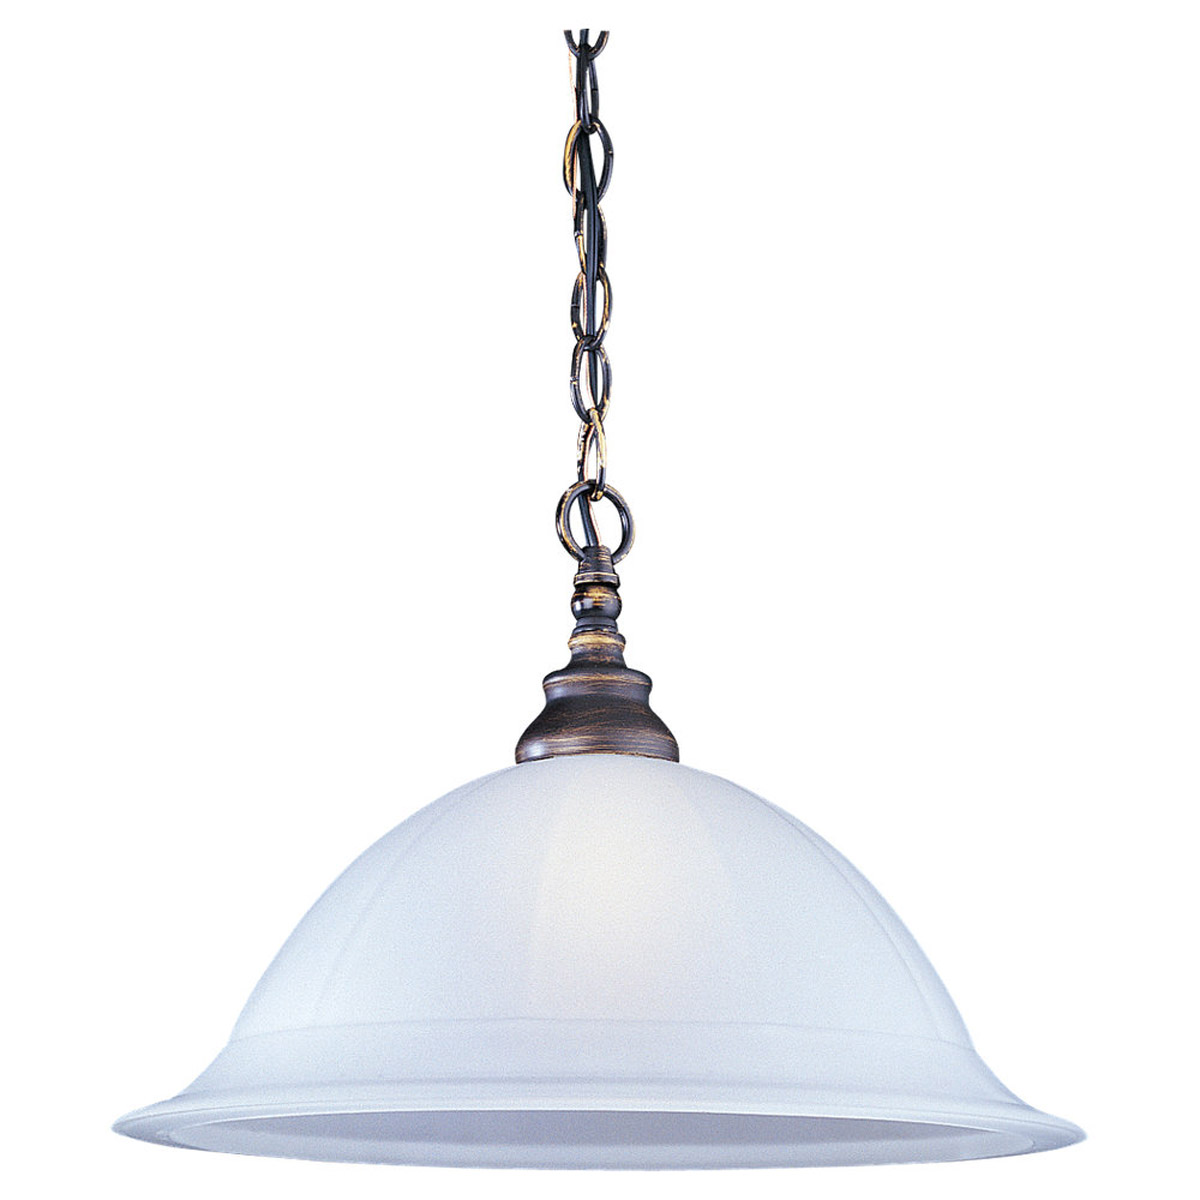 Sea Gull Lighting Canterbury 1 Light Pendant in Antique Bronze 65050-71